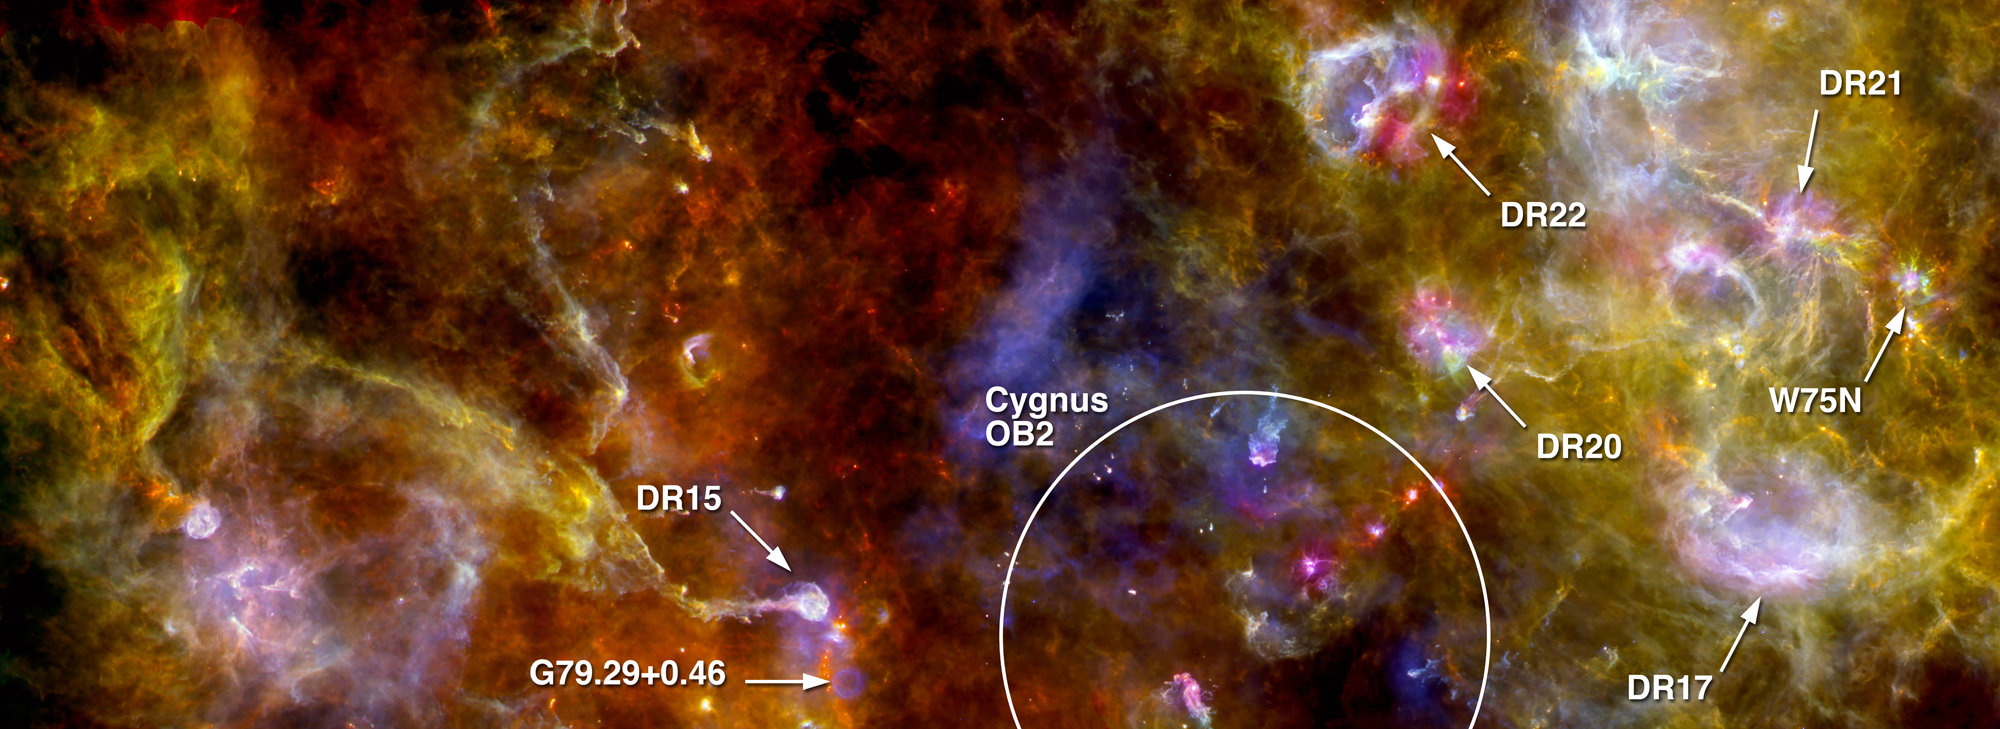 Annotated Image of Cygnus-X Star-Forming Region